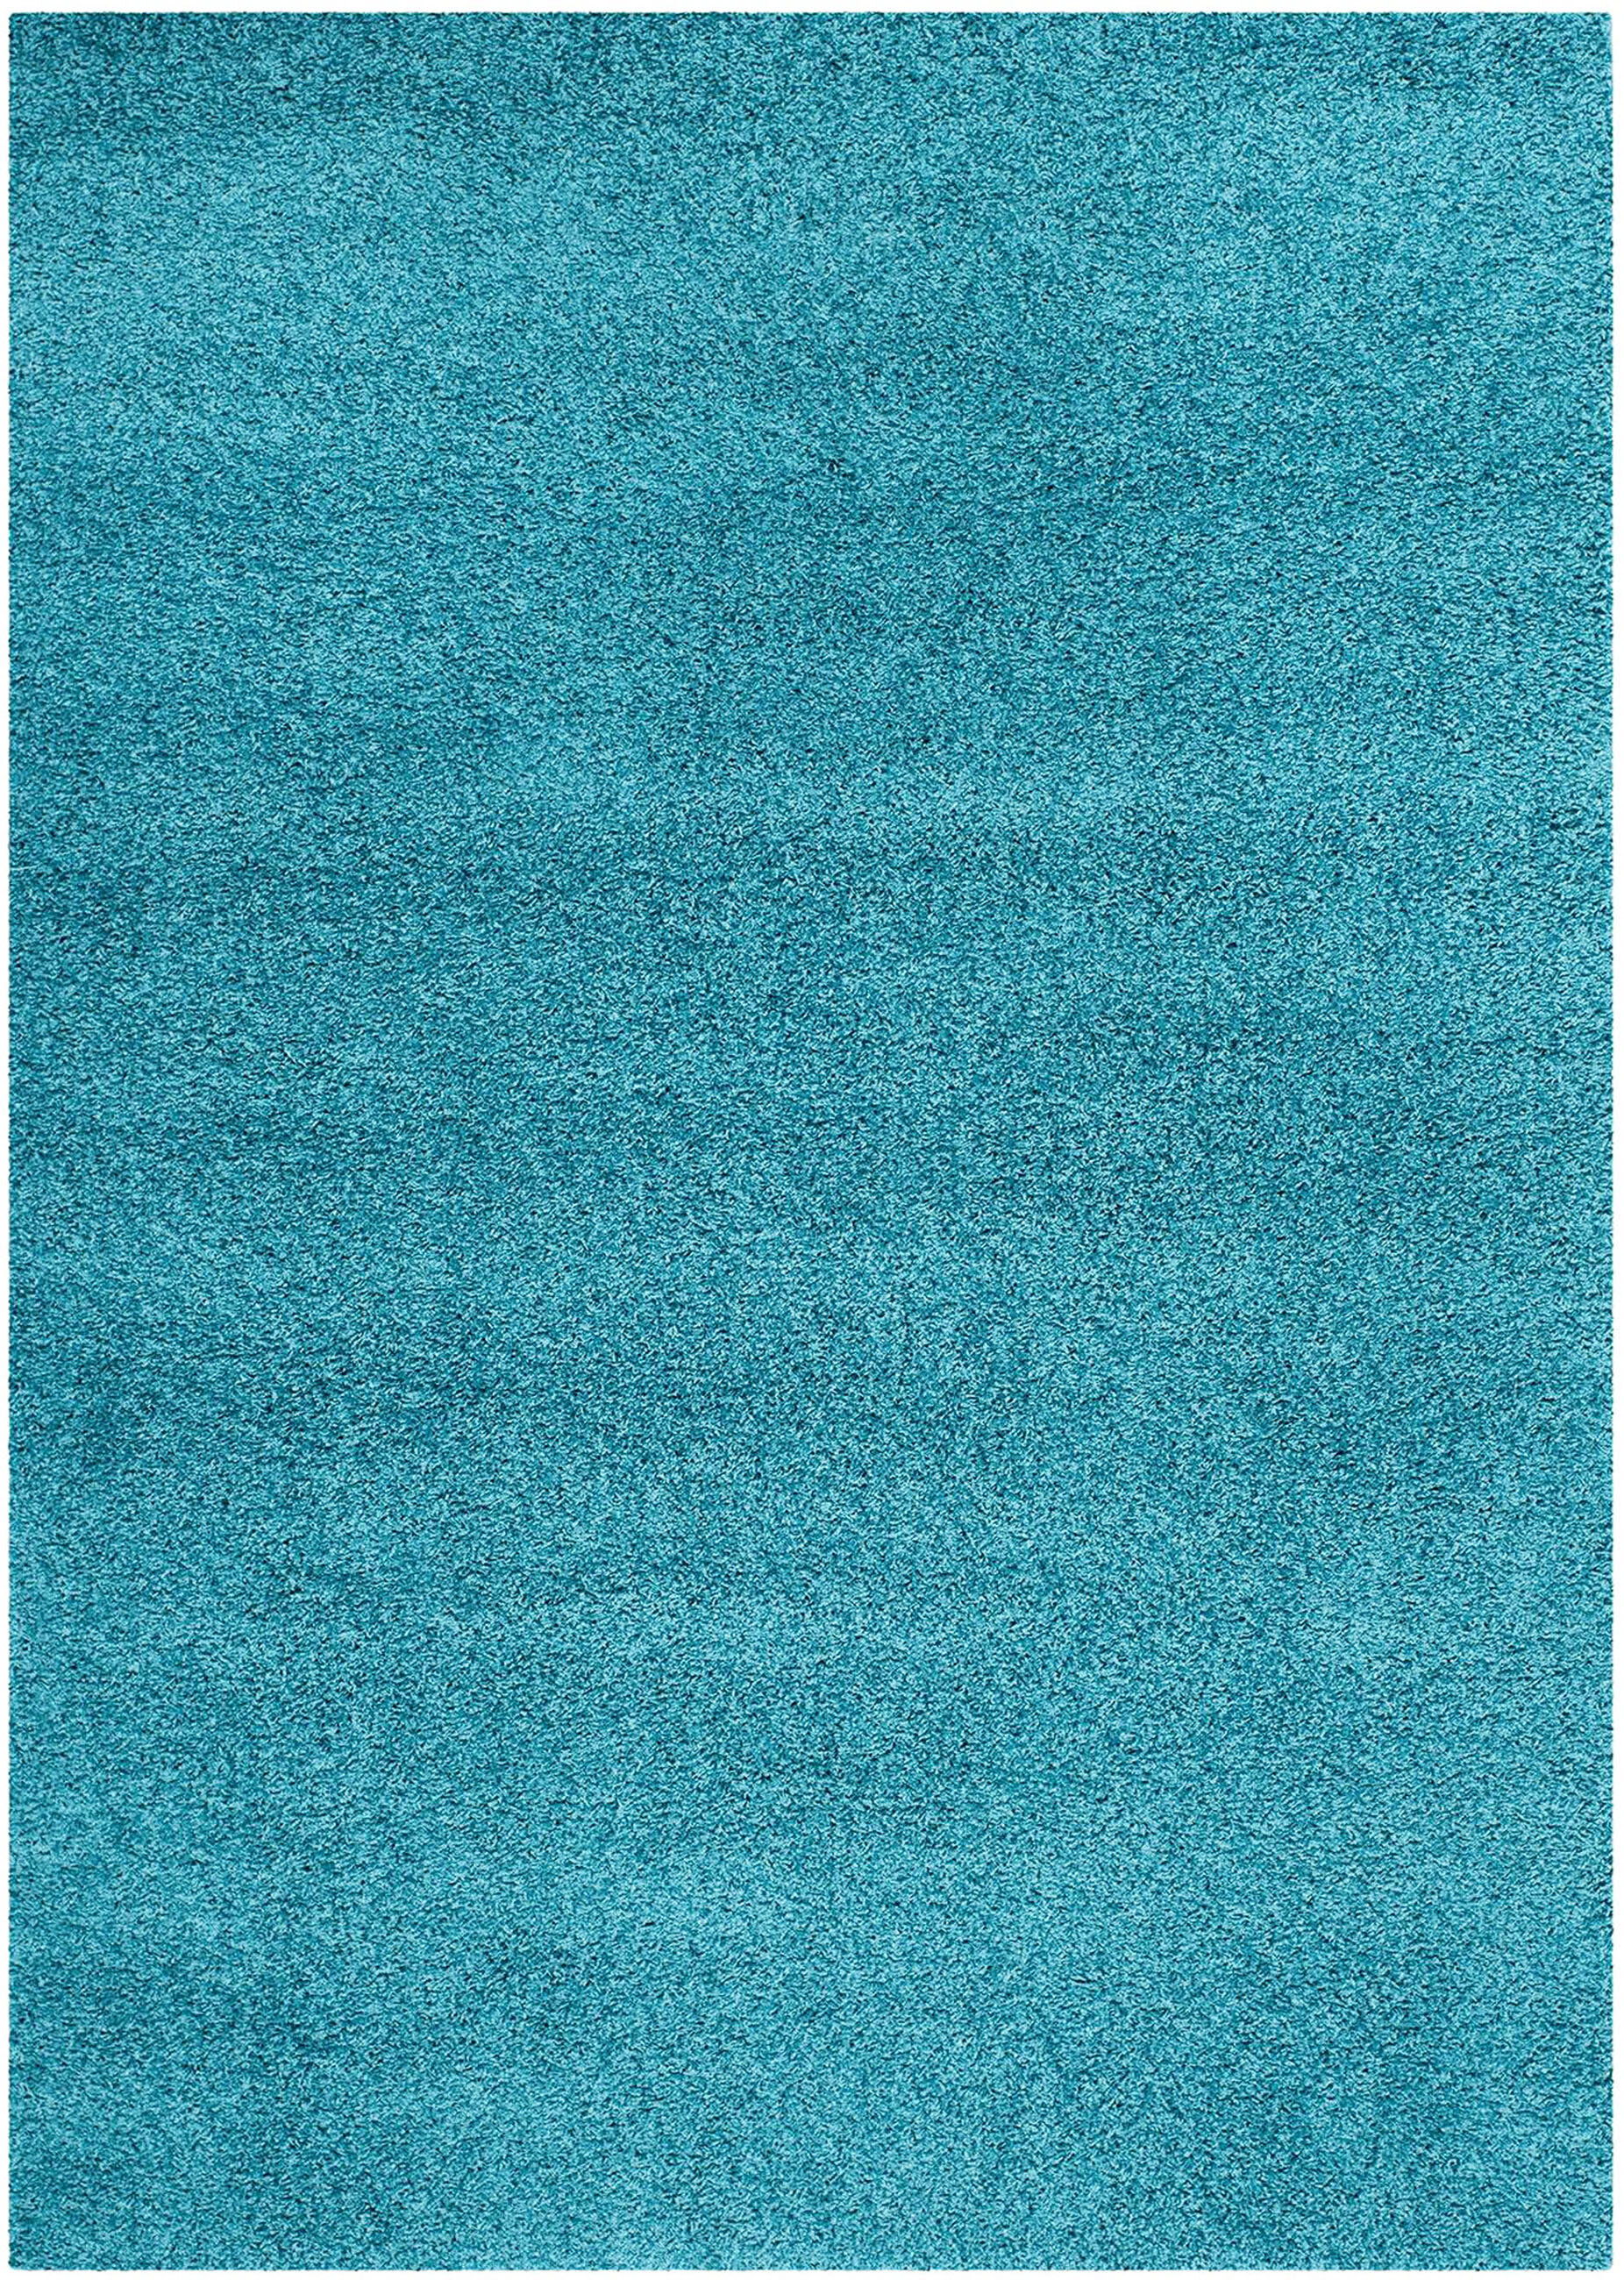 woven detail enviro turquoise products mathias handloom domaci rug area